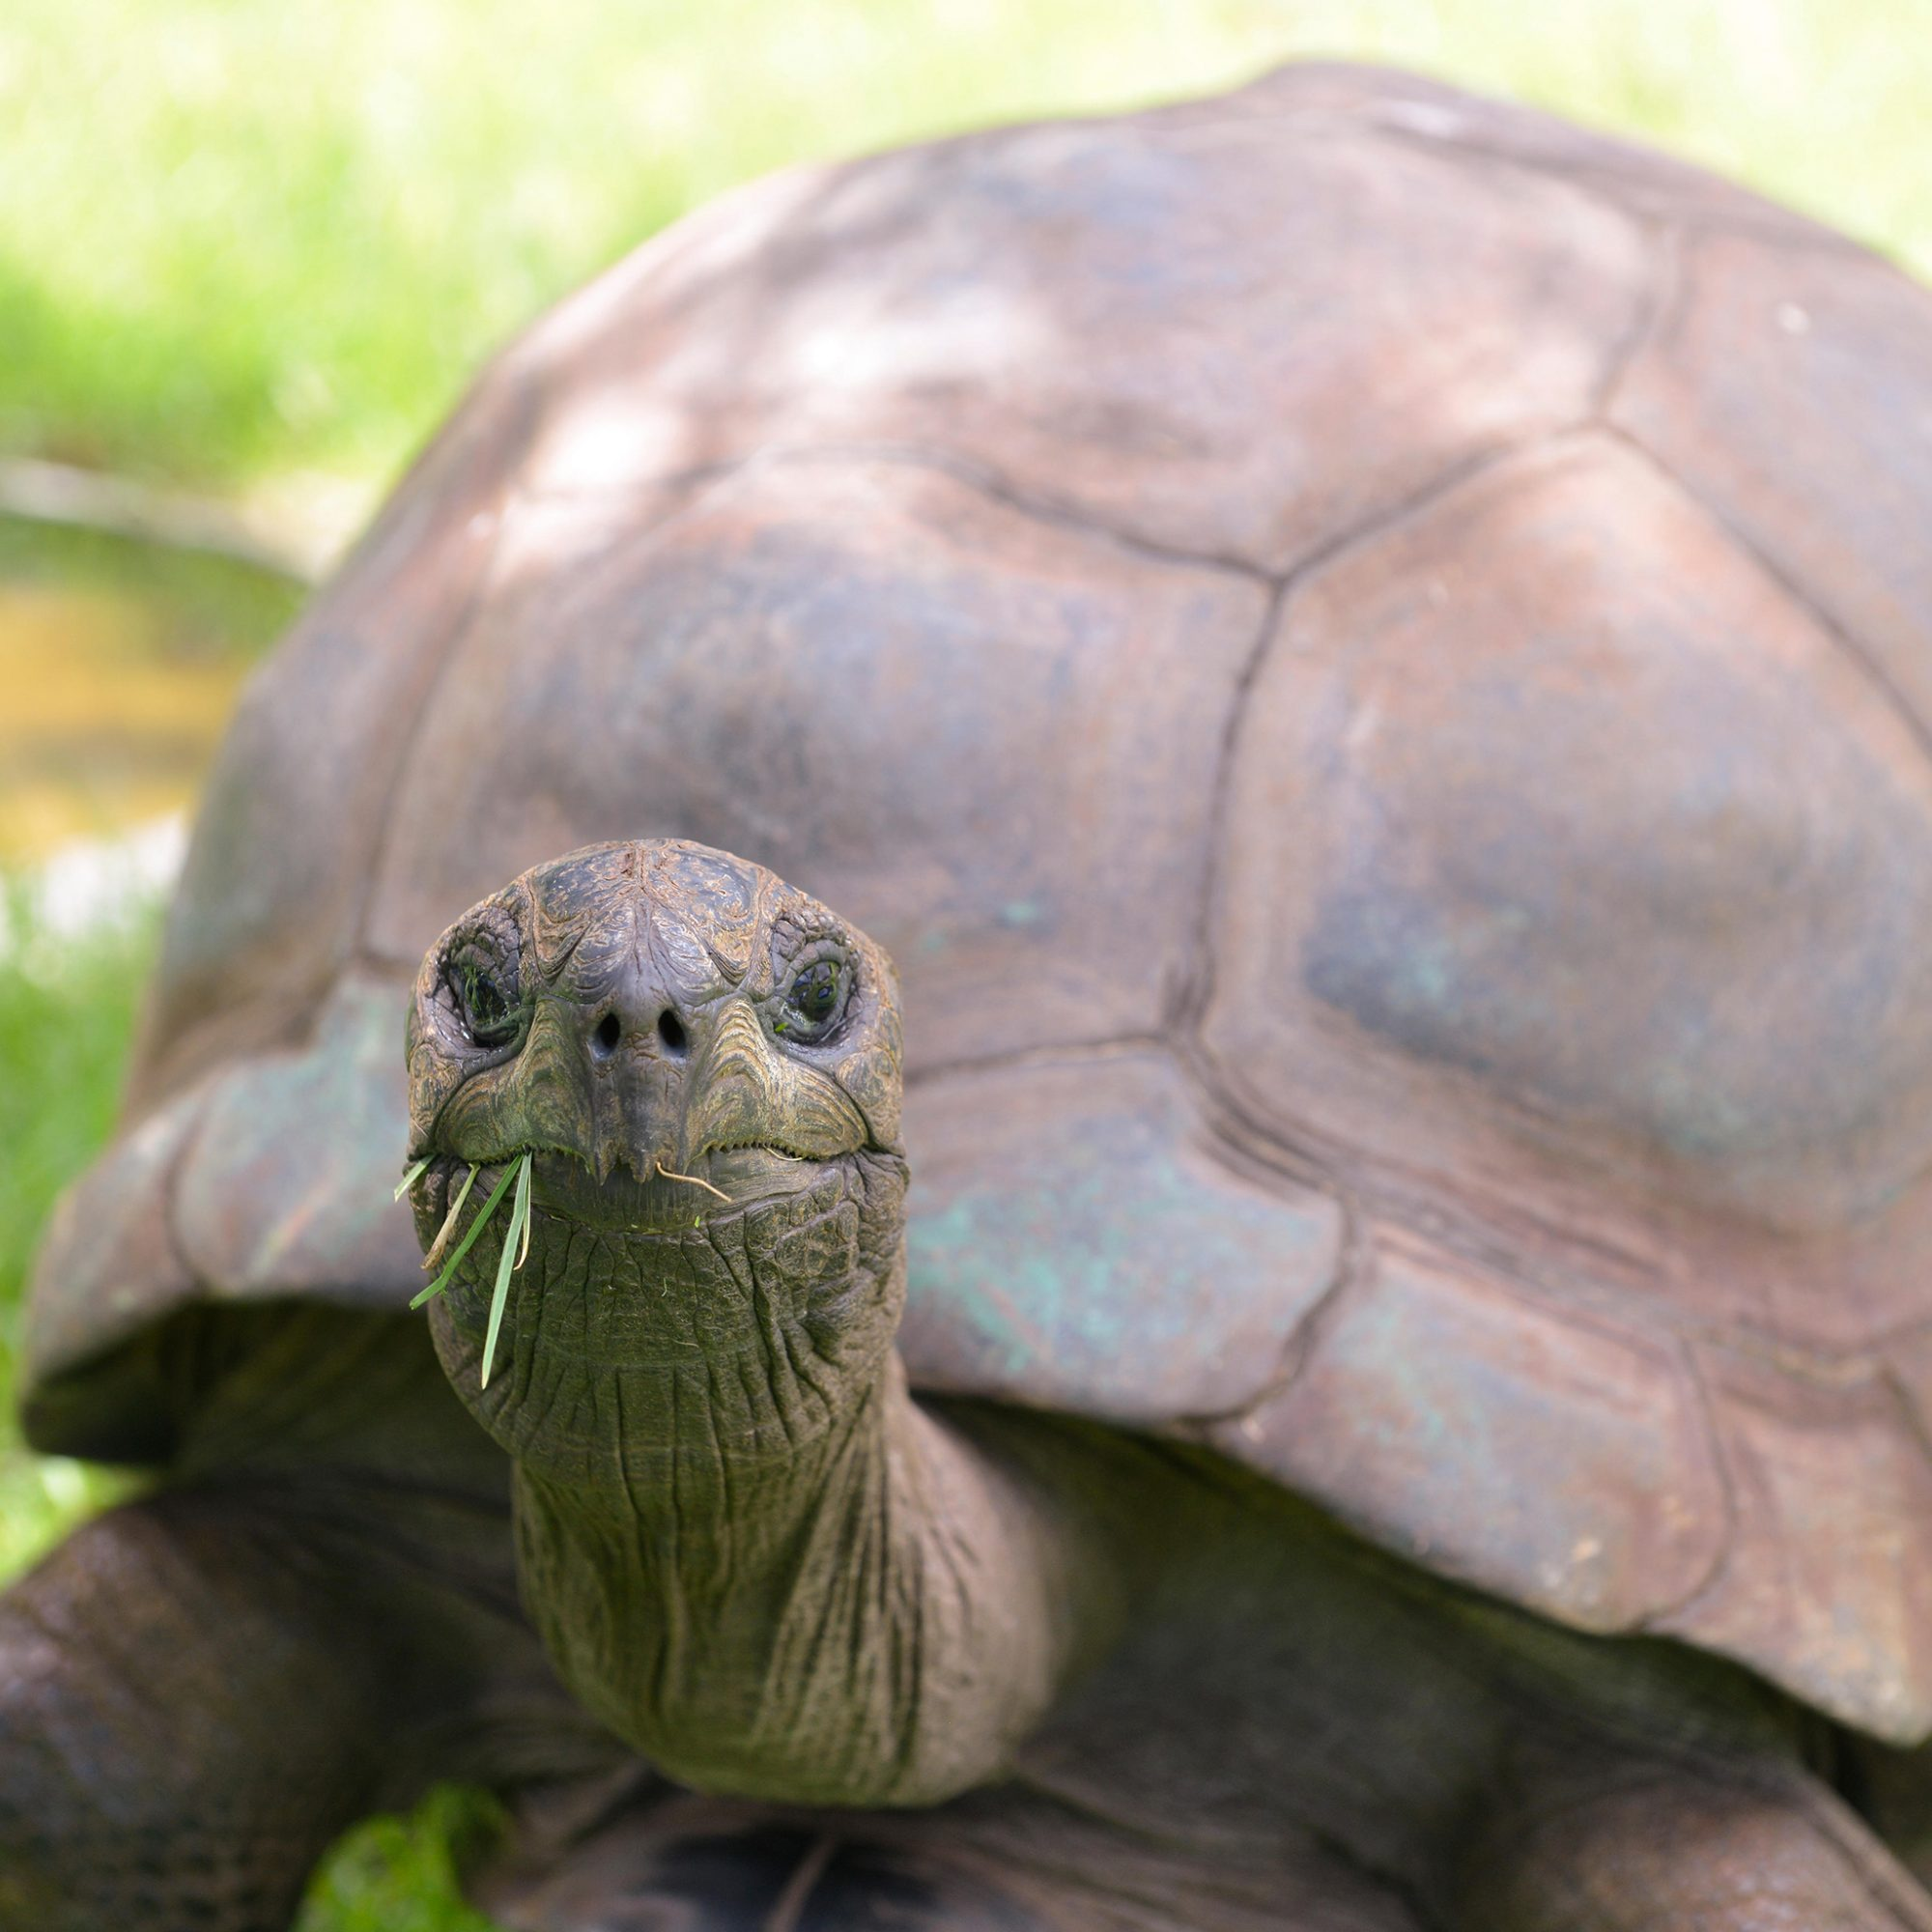 Our Ancestors Loved Grubbing on Tortoises, According to New Study